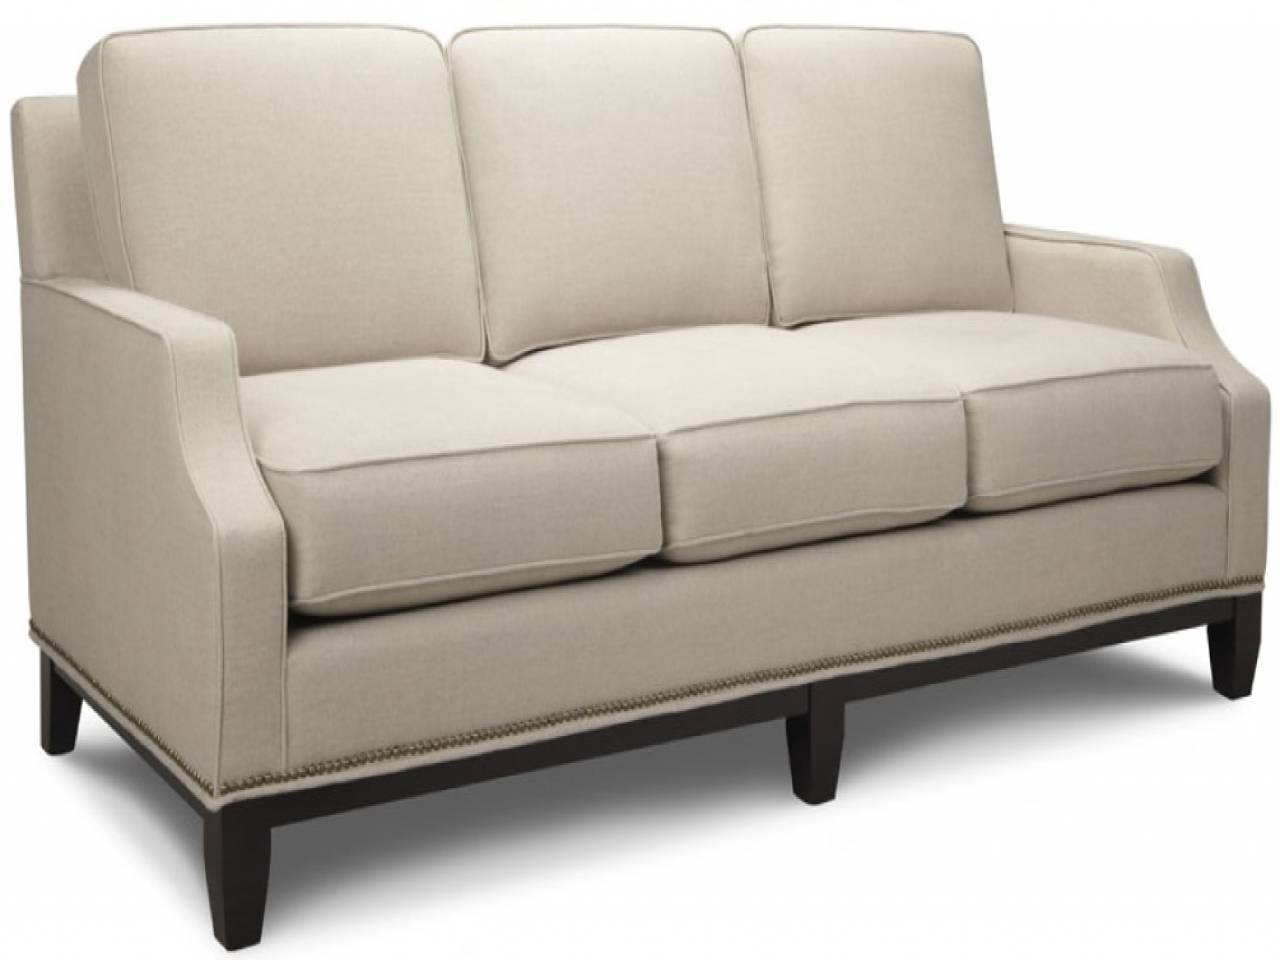 Sofas Center : Unusual Sectional Pit Sofa Images Inspirations within Unusual Sofas (Image 18 of 25)